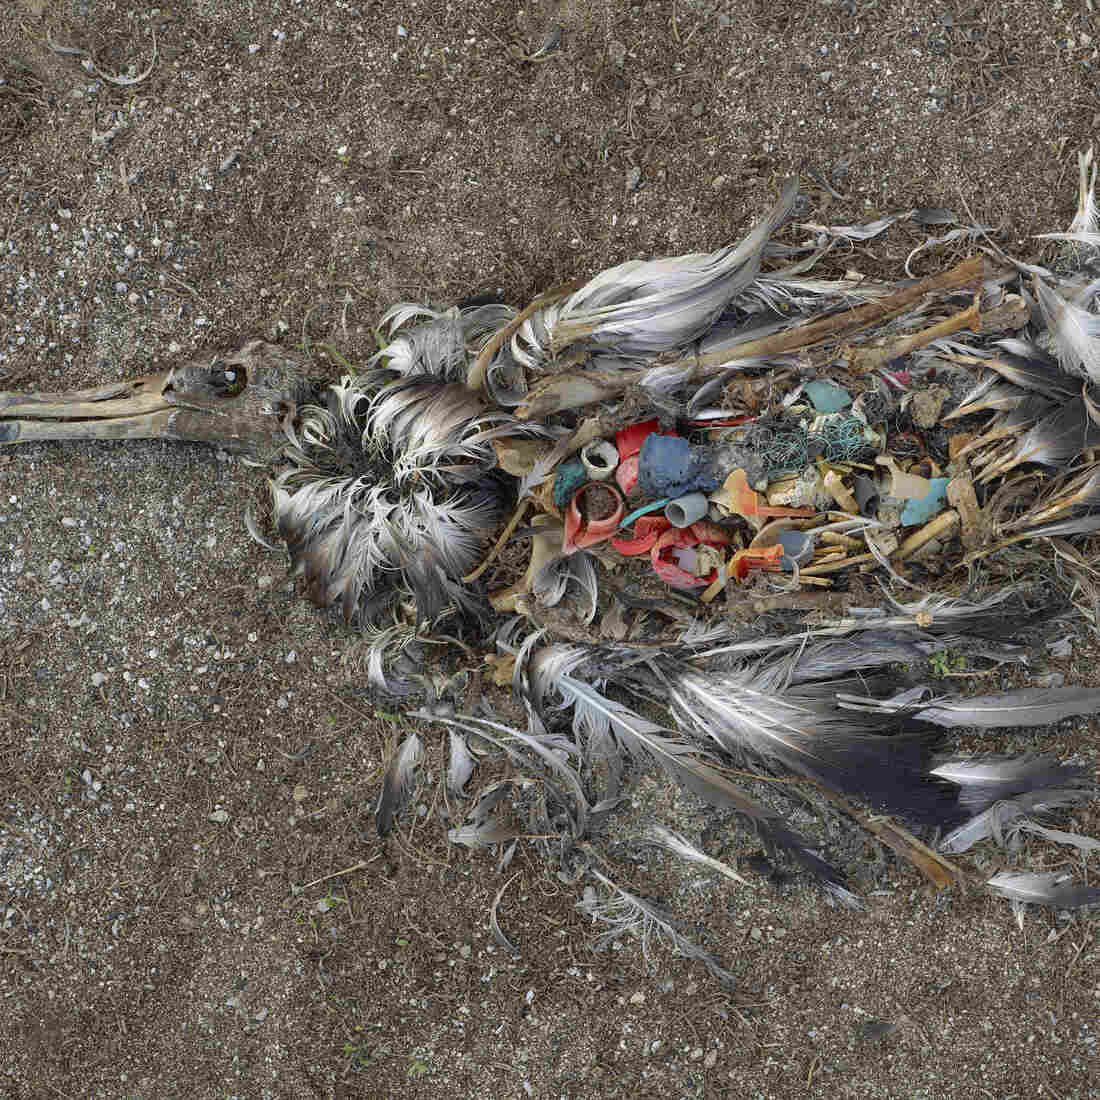 Plastics Don't Disappear, But They Do End Up In Seabirds' Bellies